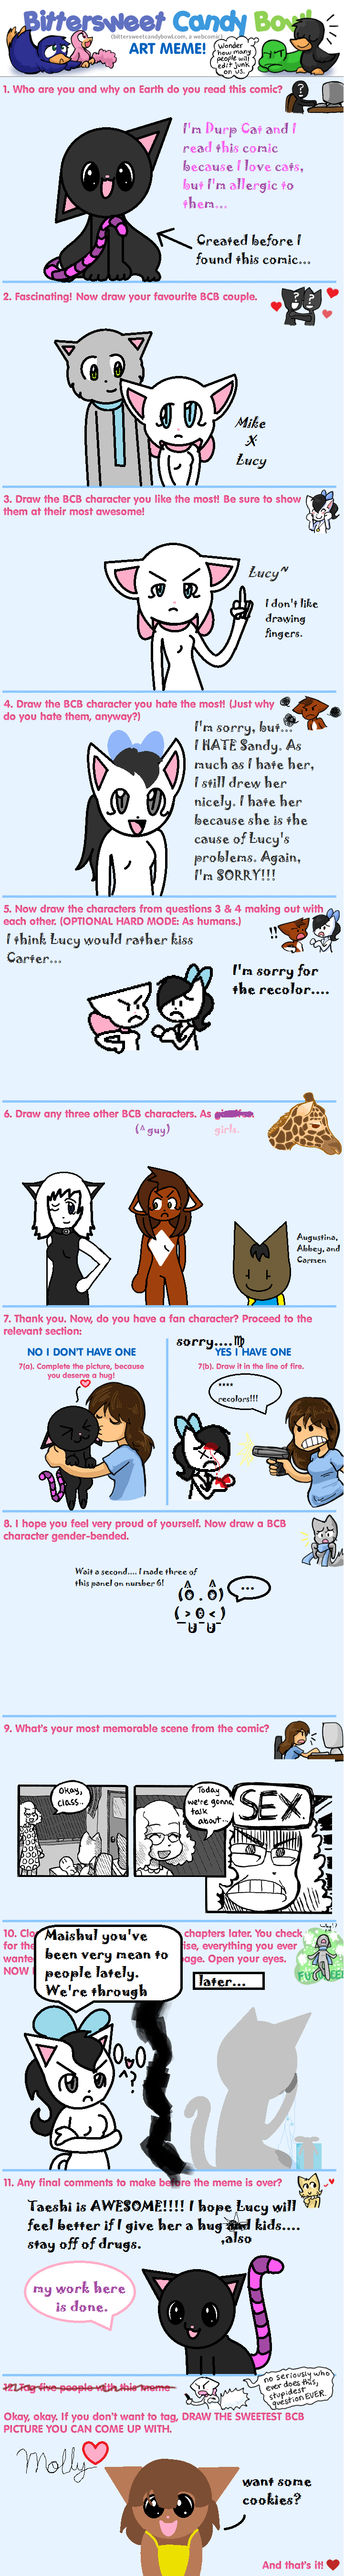 Candybooru image #5996, tagged with Abbey Augustus BCB_Art_Meme Carter DurpCat_(Artist) MikexLucy Molly Sandy